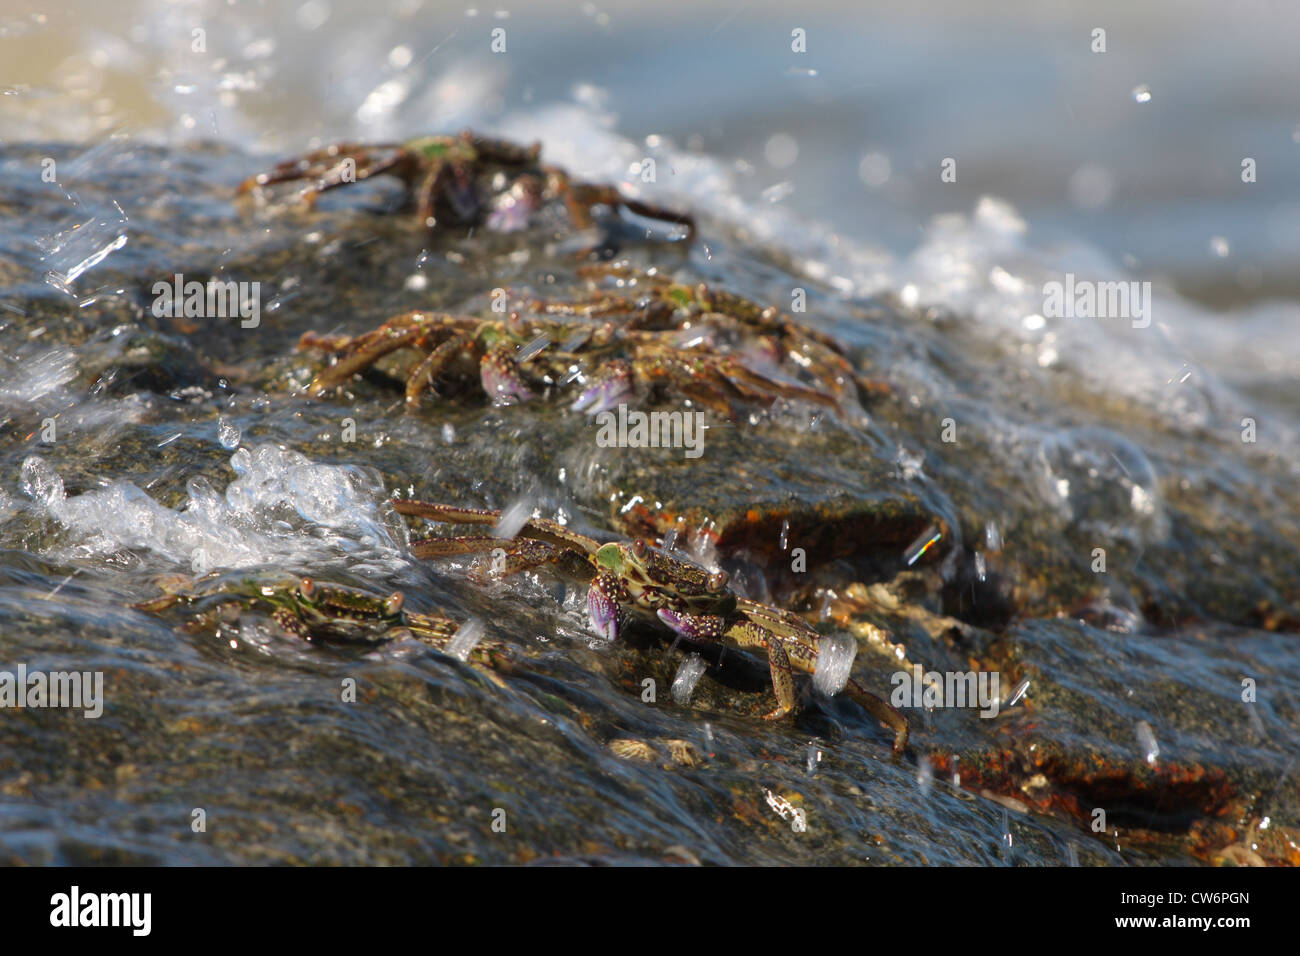 marsh crabs, shore crabs, talon crabs (Grapsus spec., Grapsidae), some animals on a rock in the surf, Thailand, - Stock Image